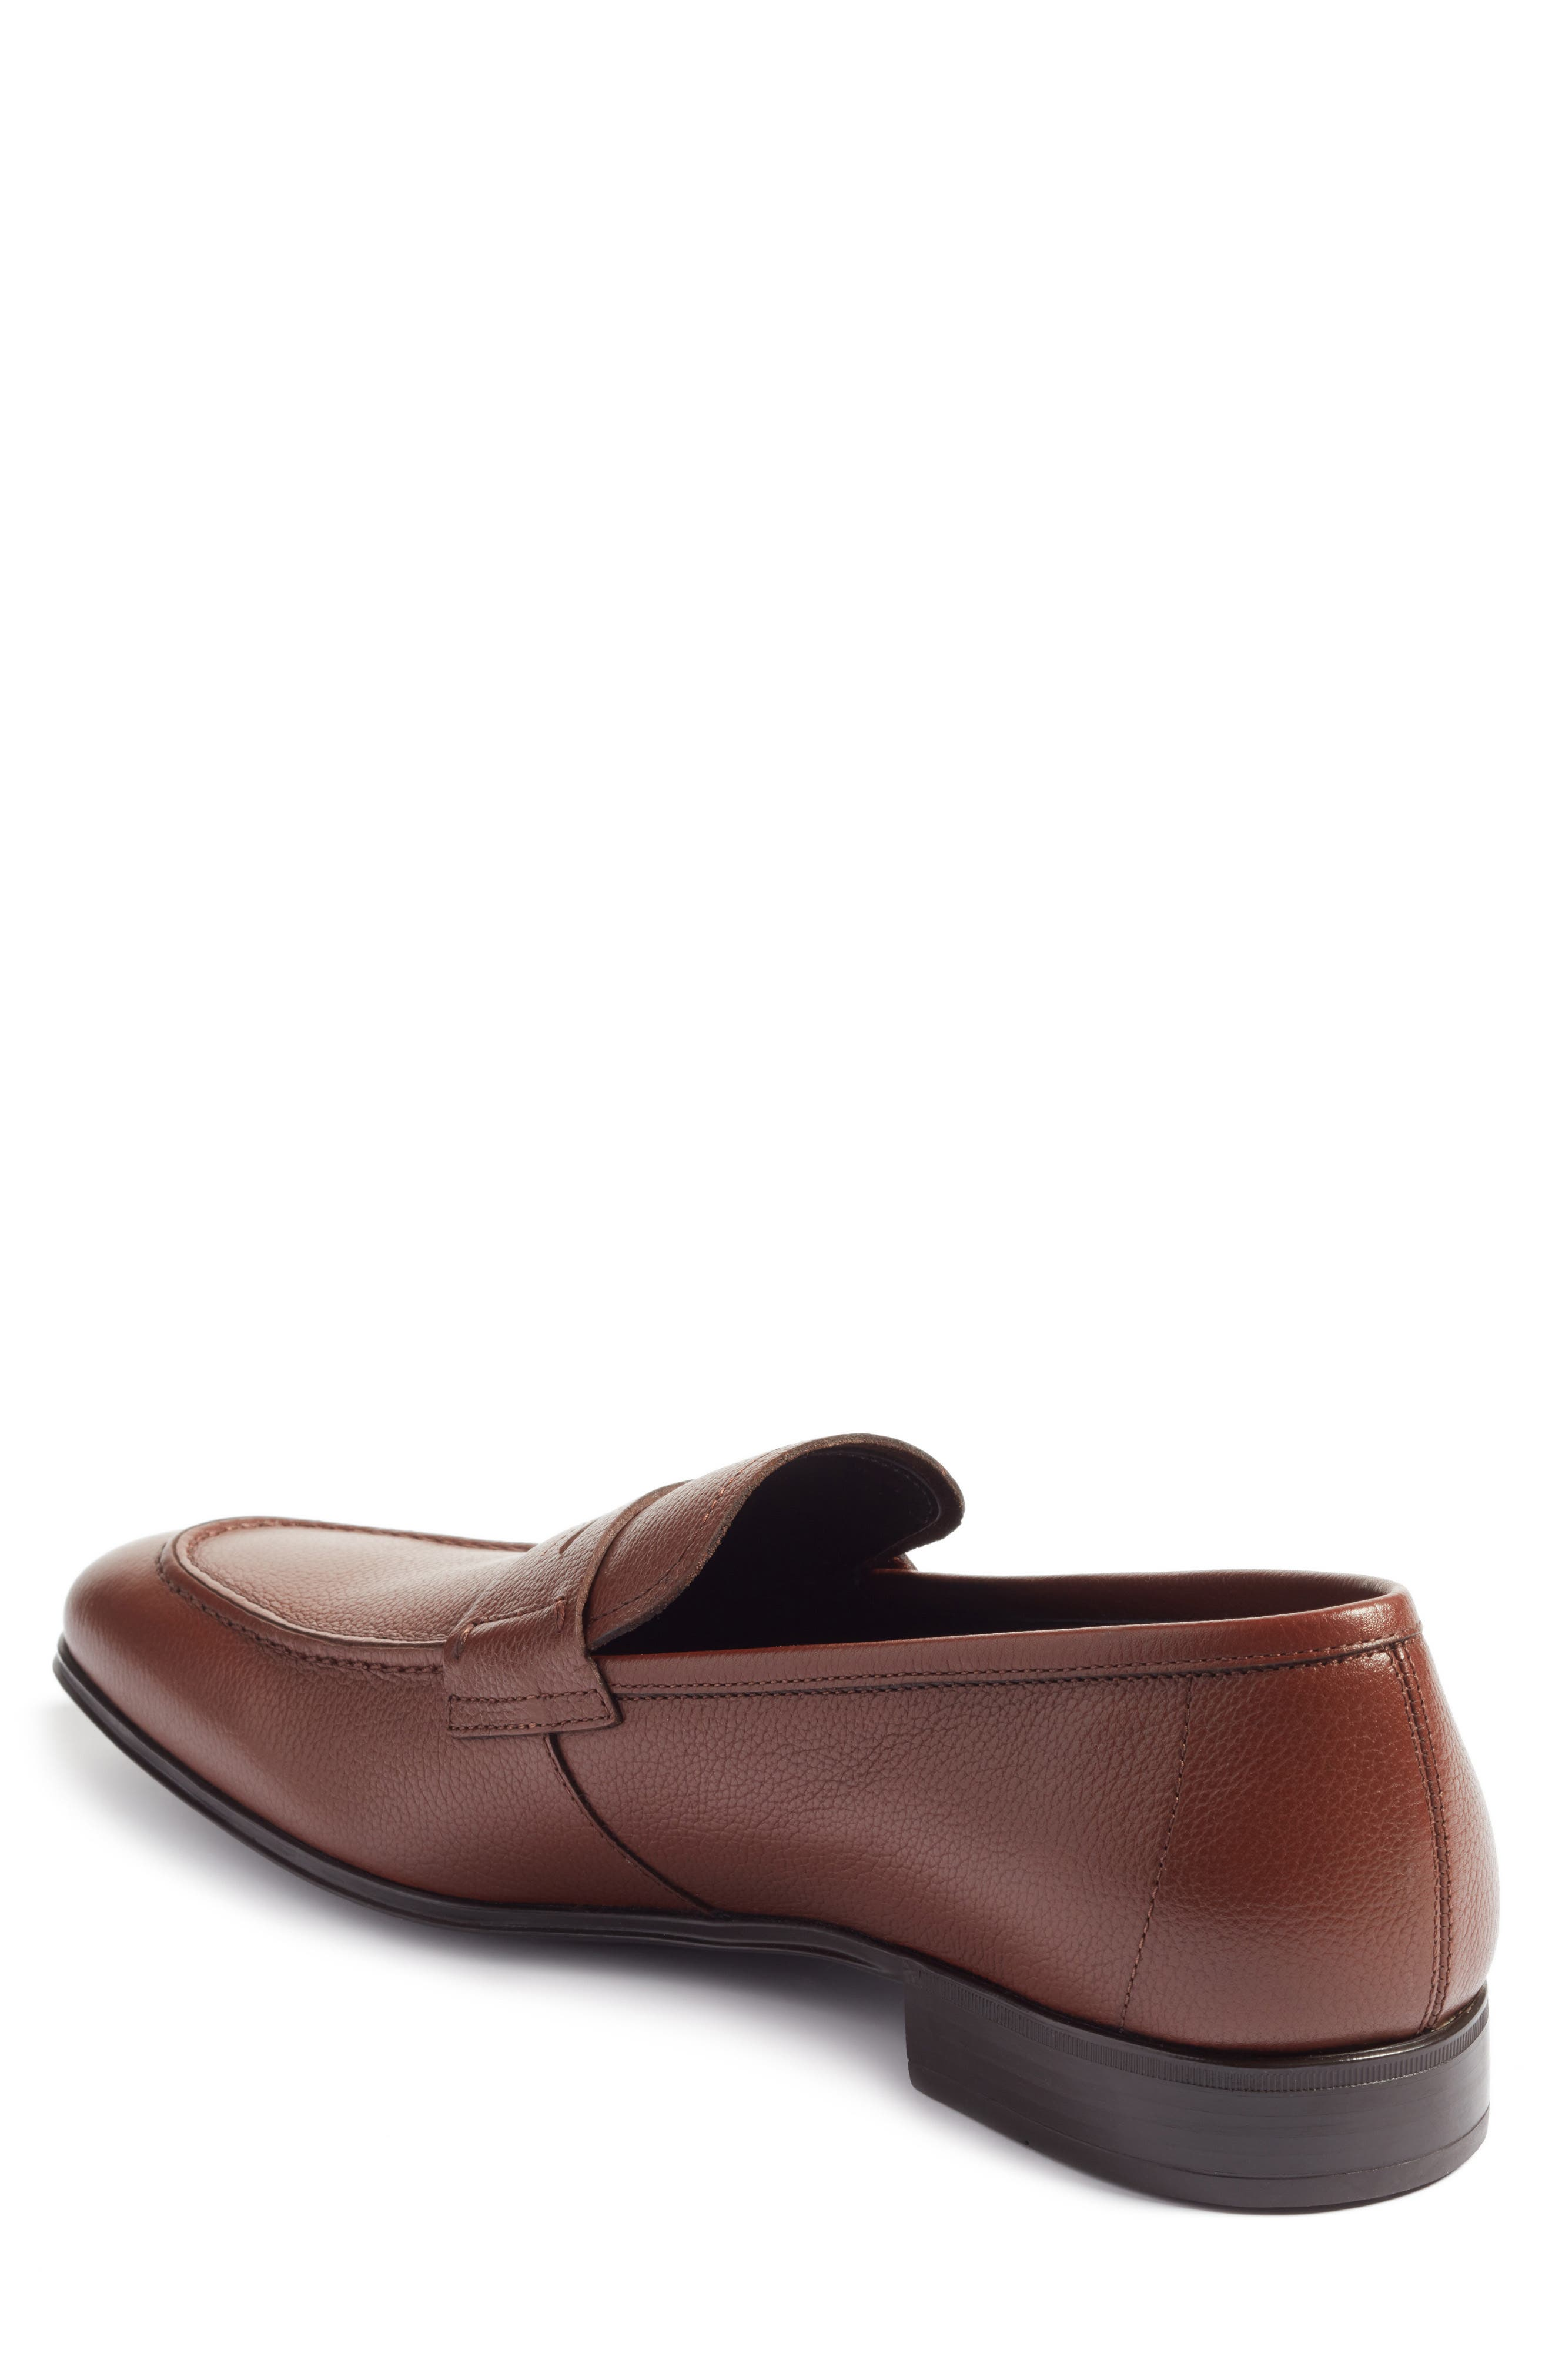 Fiorino 2 Penny Loafer,                             Alternate thumbnail 2, color,                             Dark Cuoio Leather